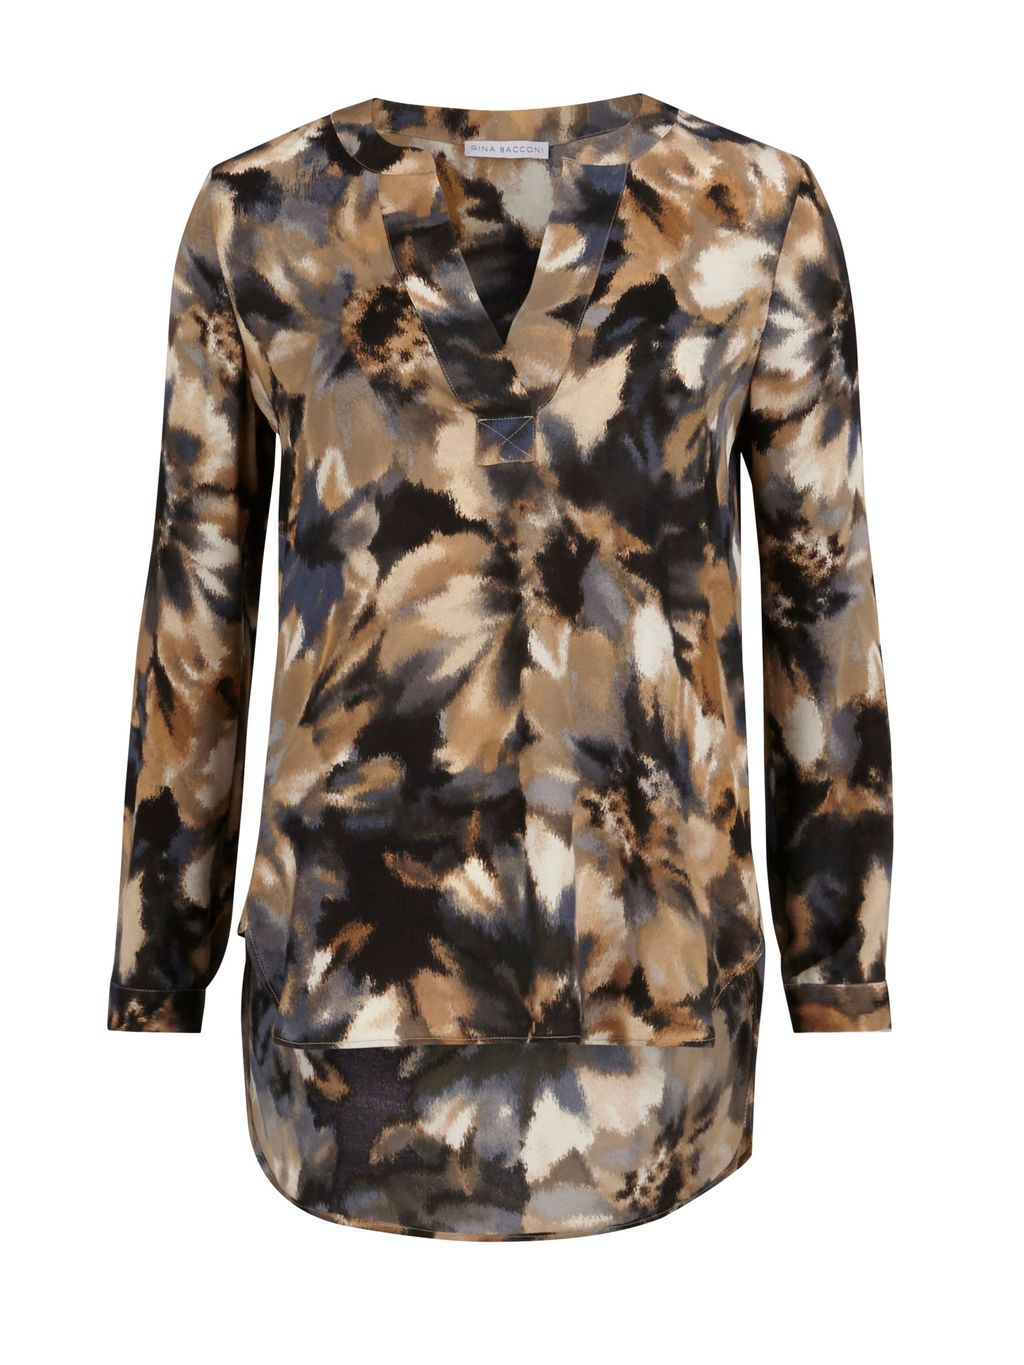 Water Colour Flower Print Kaftan, Multi Coloured - style: tunic; length: mini; neckline: v-neck; predominant colour: camel; secondary colour: black; occasions: casual; fit: straight cut; fibres: polyester/polyamide - 100%; sleeve length: long sleeve; sleeve style: standard; texture group: crepes; pattern type: fabric; pattern size: big & busy; pattern: patterned/print; season: s/s 2016; wardrobe: highlight